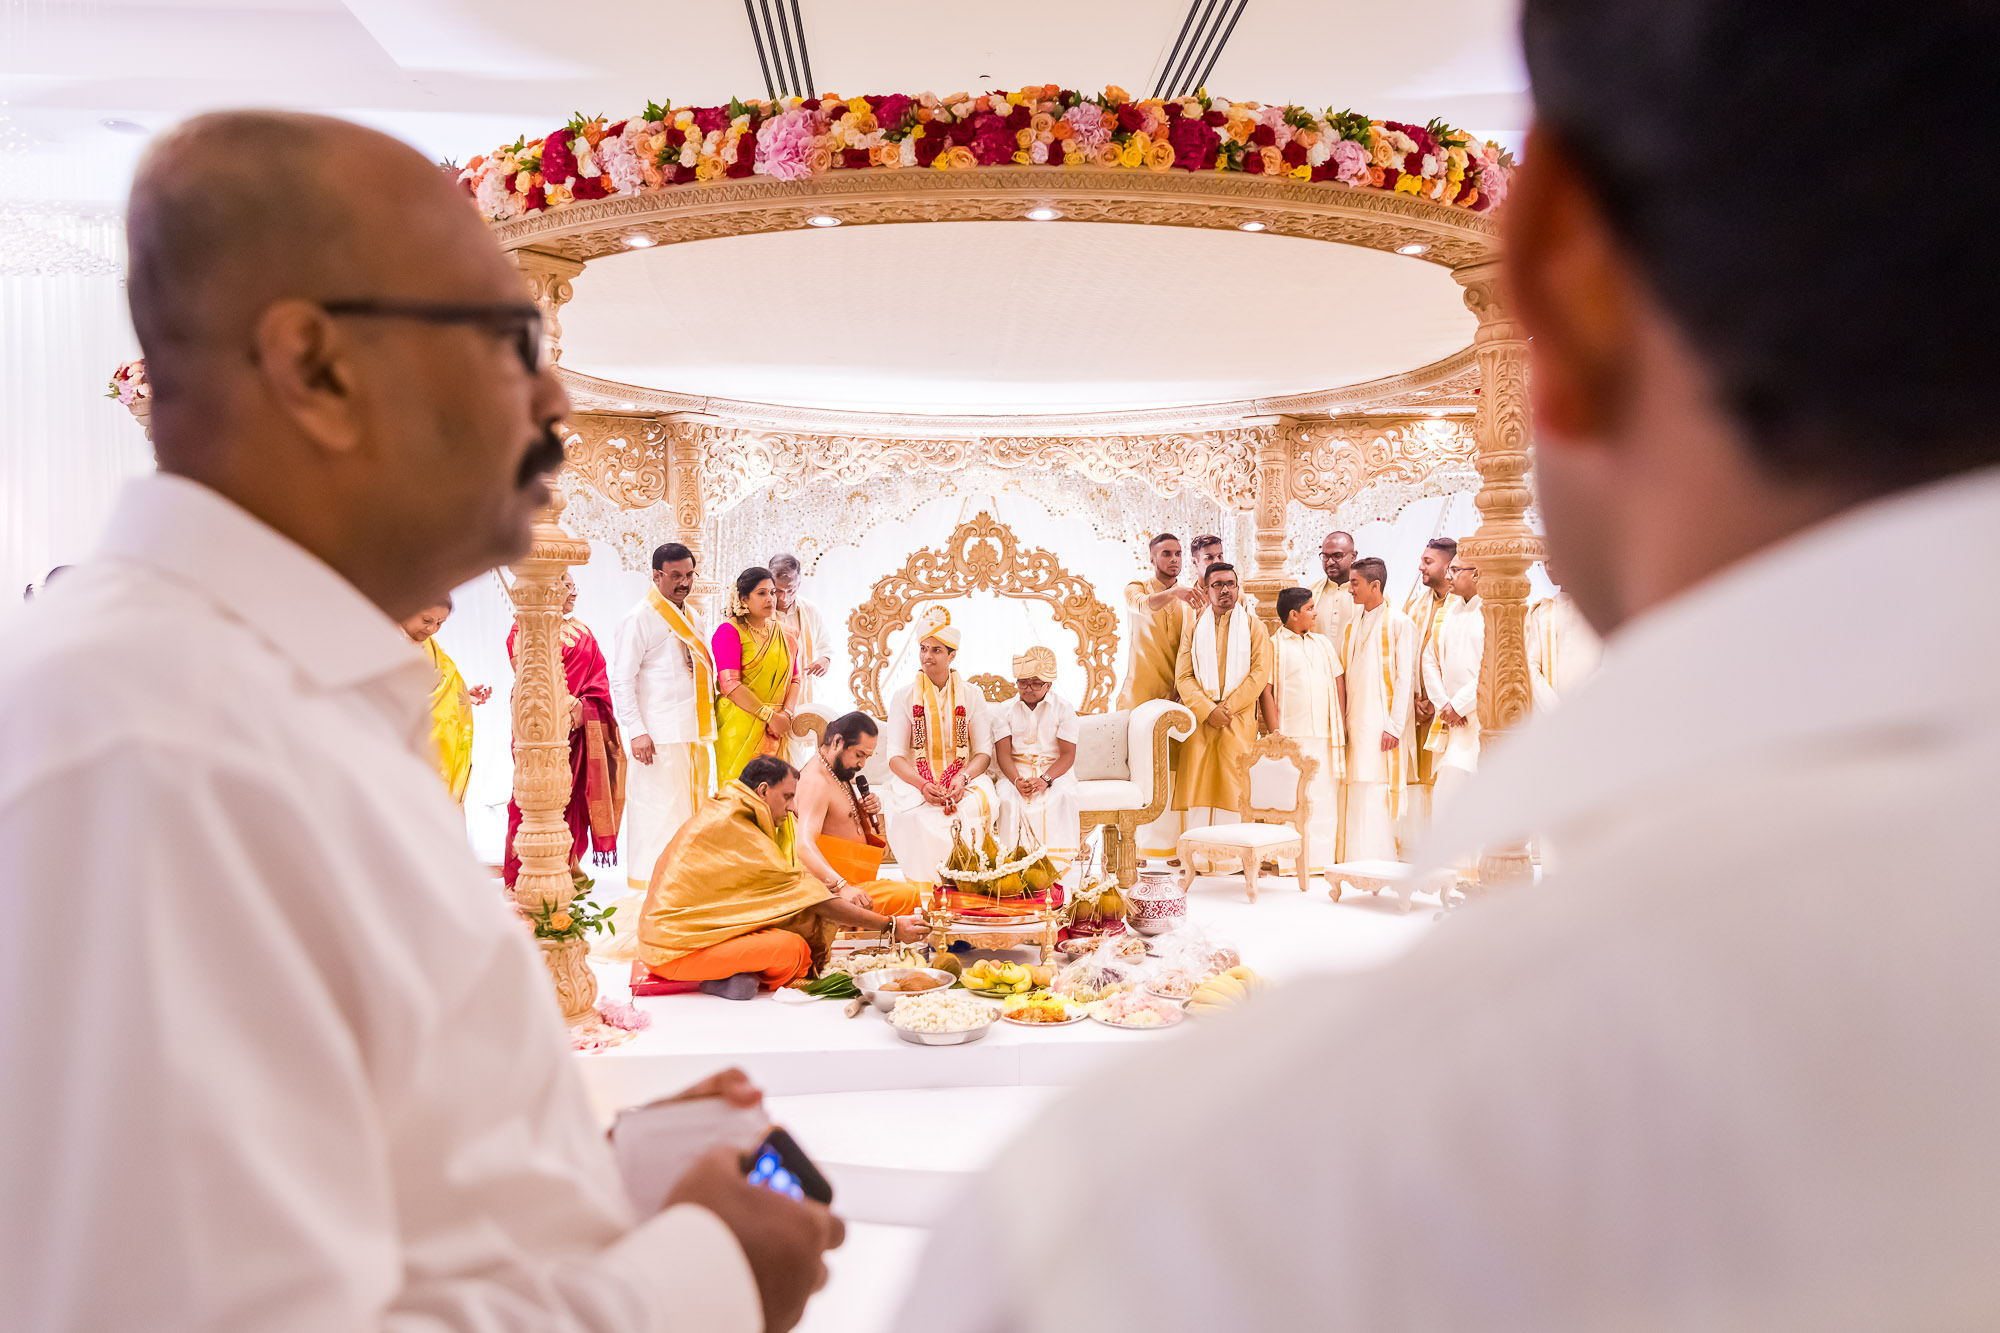 asian-wedding-hindu-tamil-photographer-heythorpe-oxford-0037.jpg